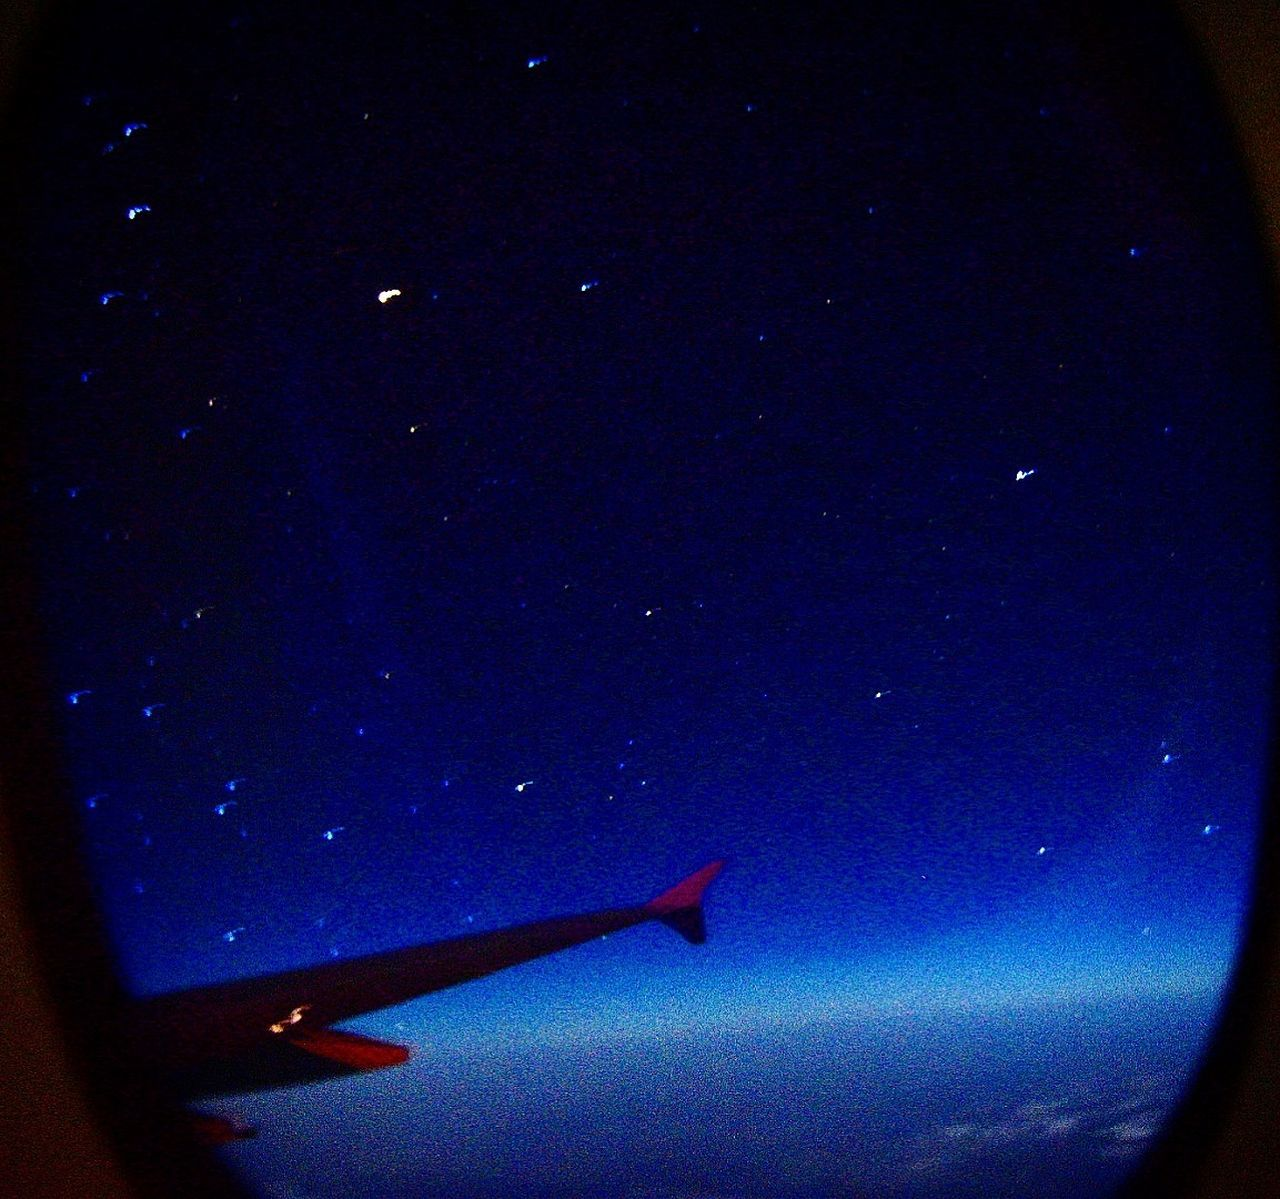 star - space, night, astronomy, sky, galaxy, no people, constellation, airplane, space, outdoors, starry, nature, beauty in nature, airplane wing